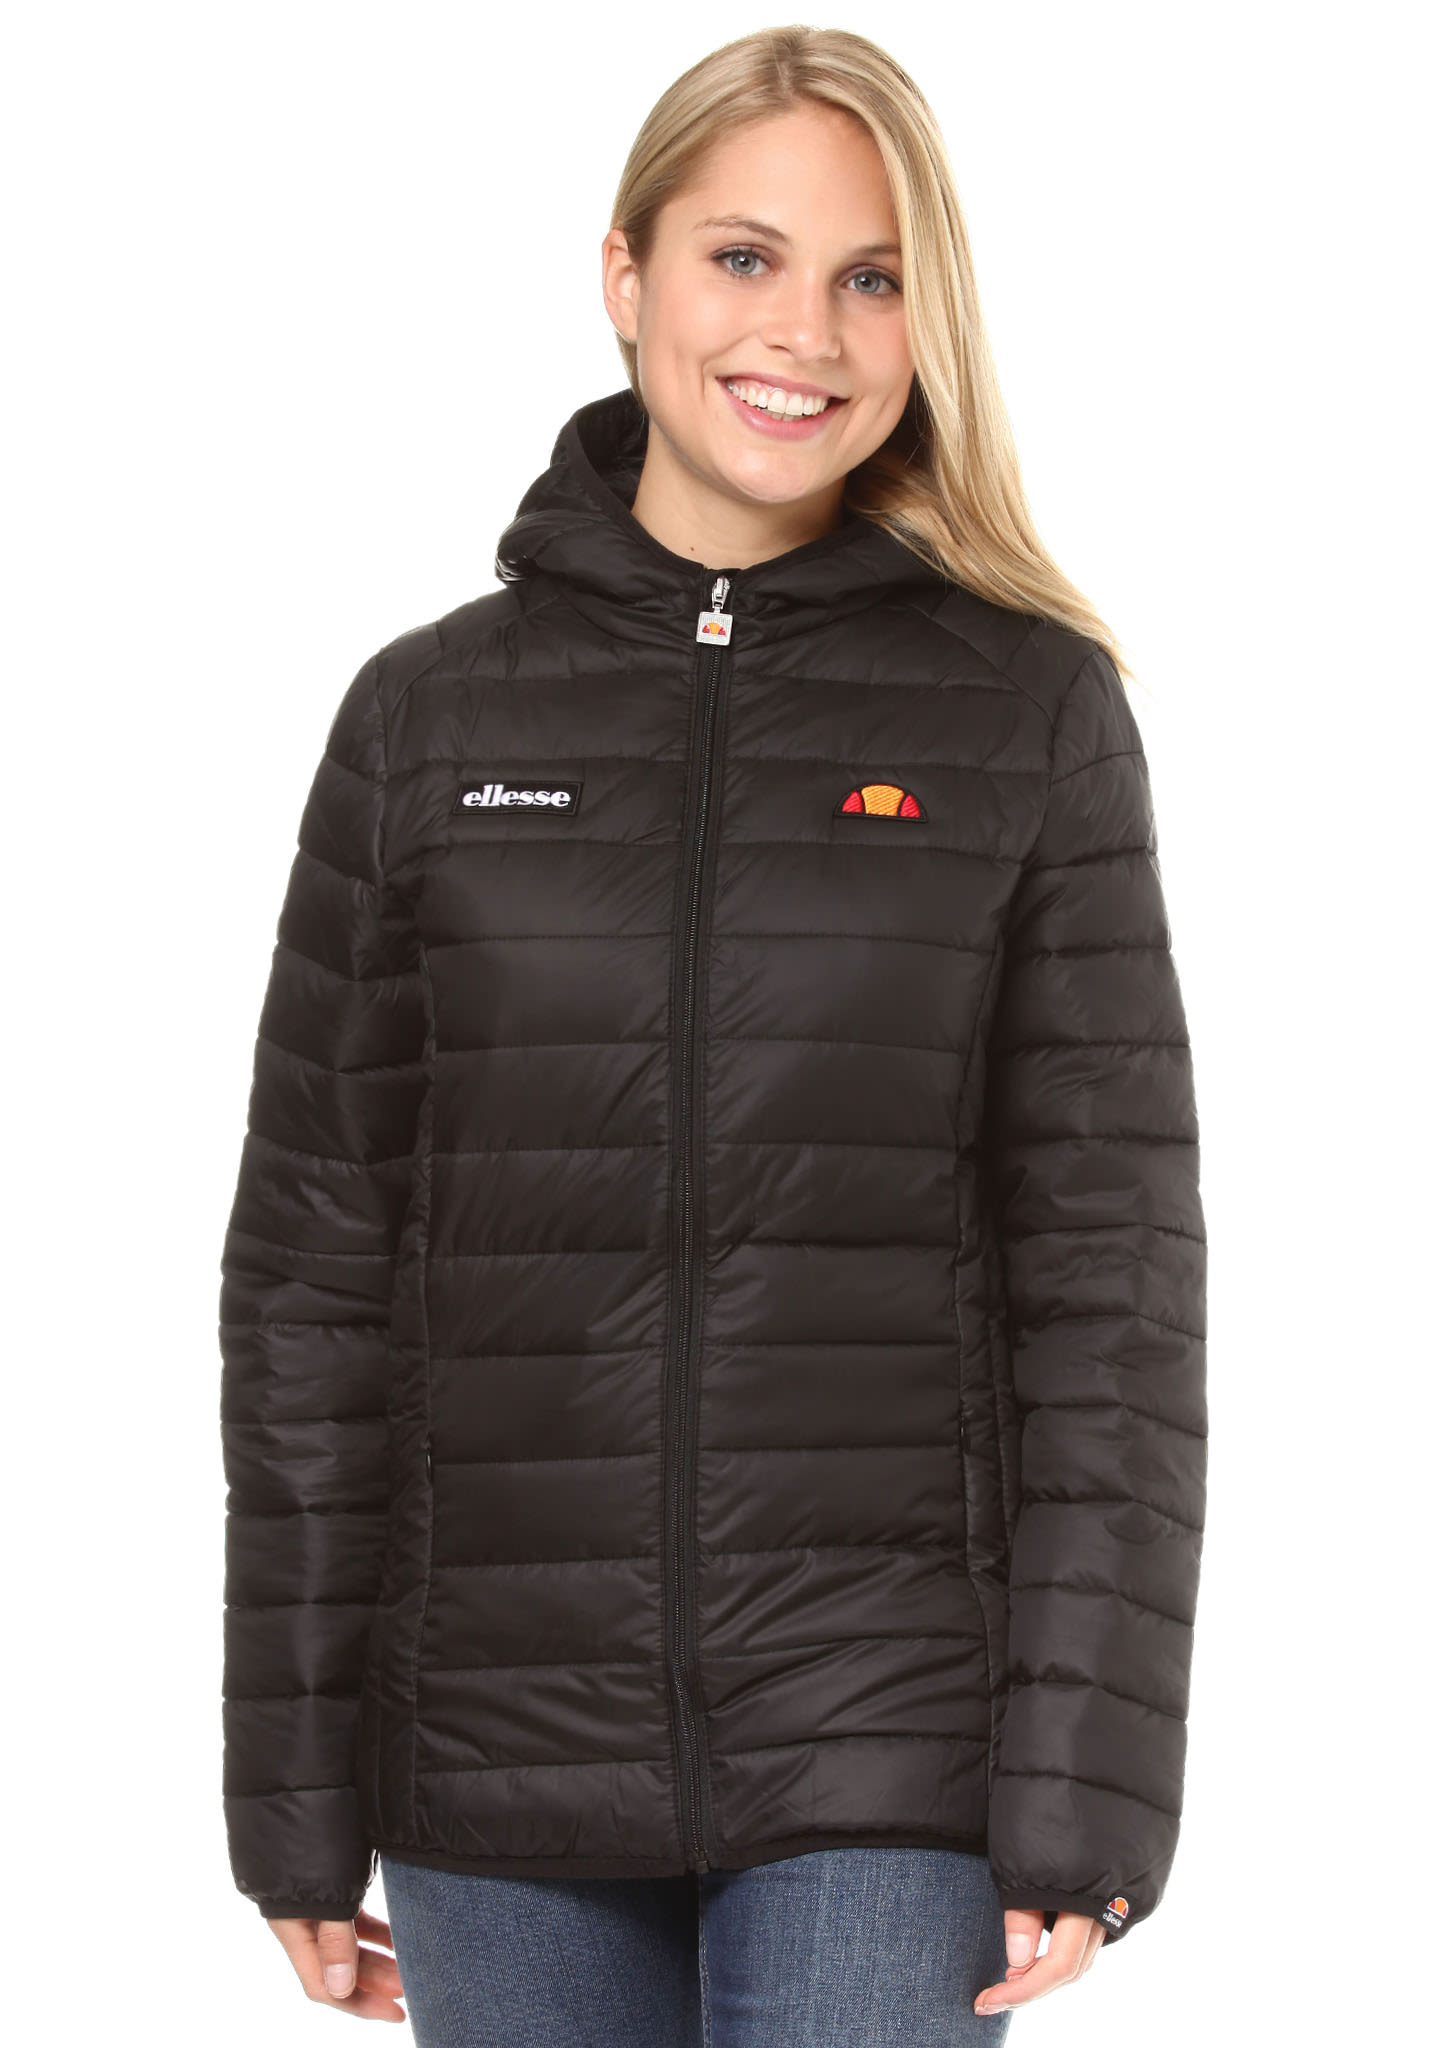 ELLESSE Lompard - Functional Jacket for Women - Grey - Planet Sports 6d6107ced21